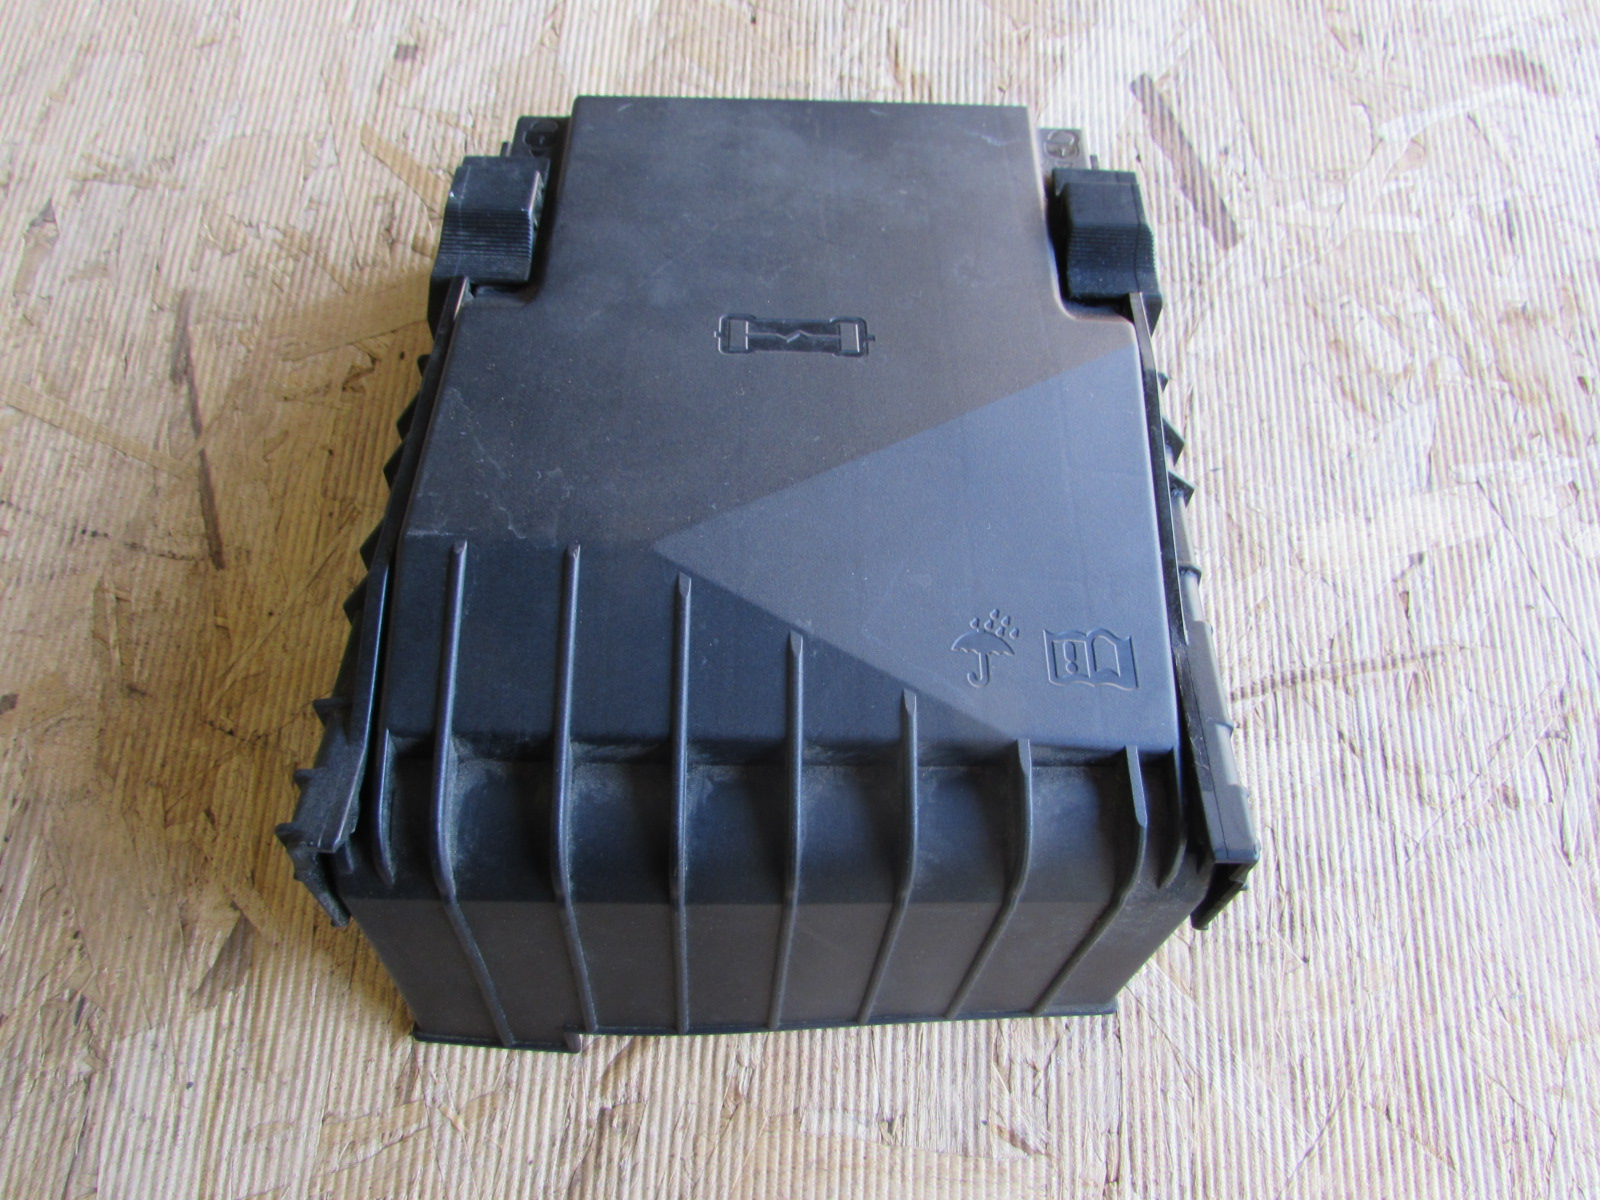 audi tt mk2 8j oem fuse relay box cover 1k0937132f. Black Bedroom Furniture Sets. Home Design Ideas